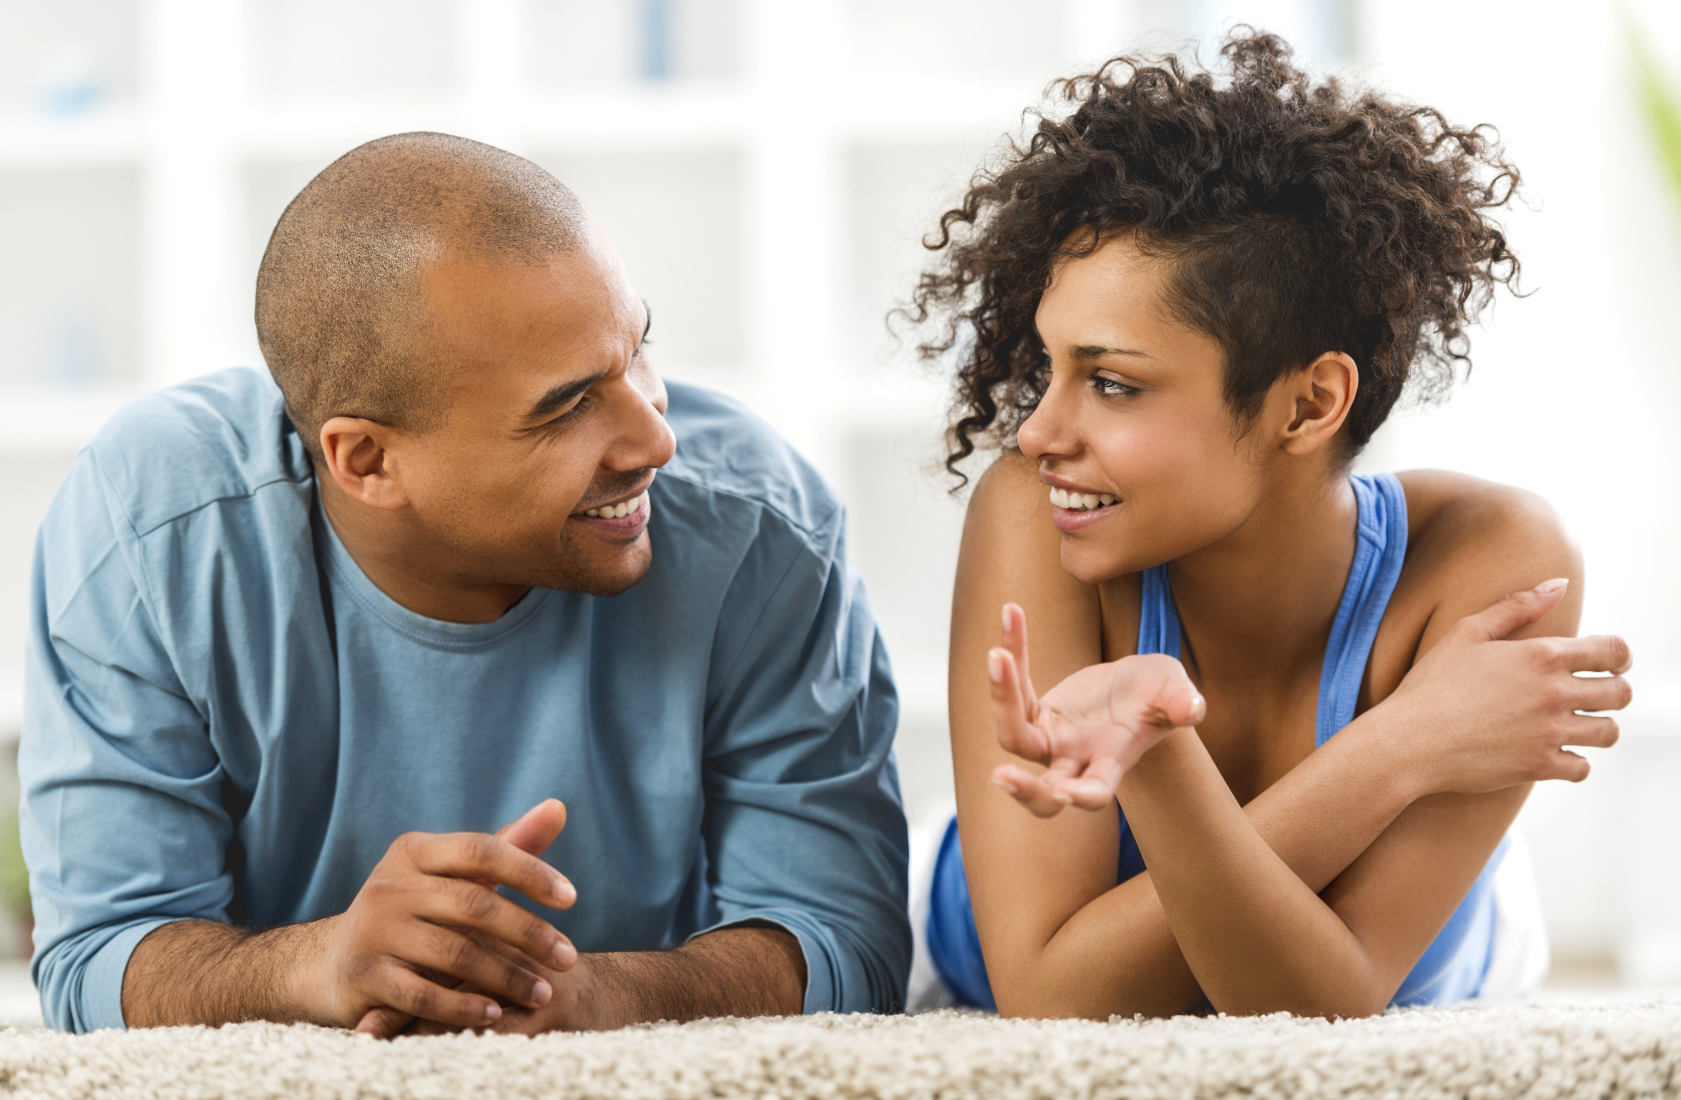 Part 2 TOP 10 DEAL BREAKERS: REASONS WHY YOUR WOMAN MAY NOT WANT YOU ANYMORE